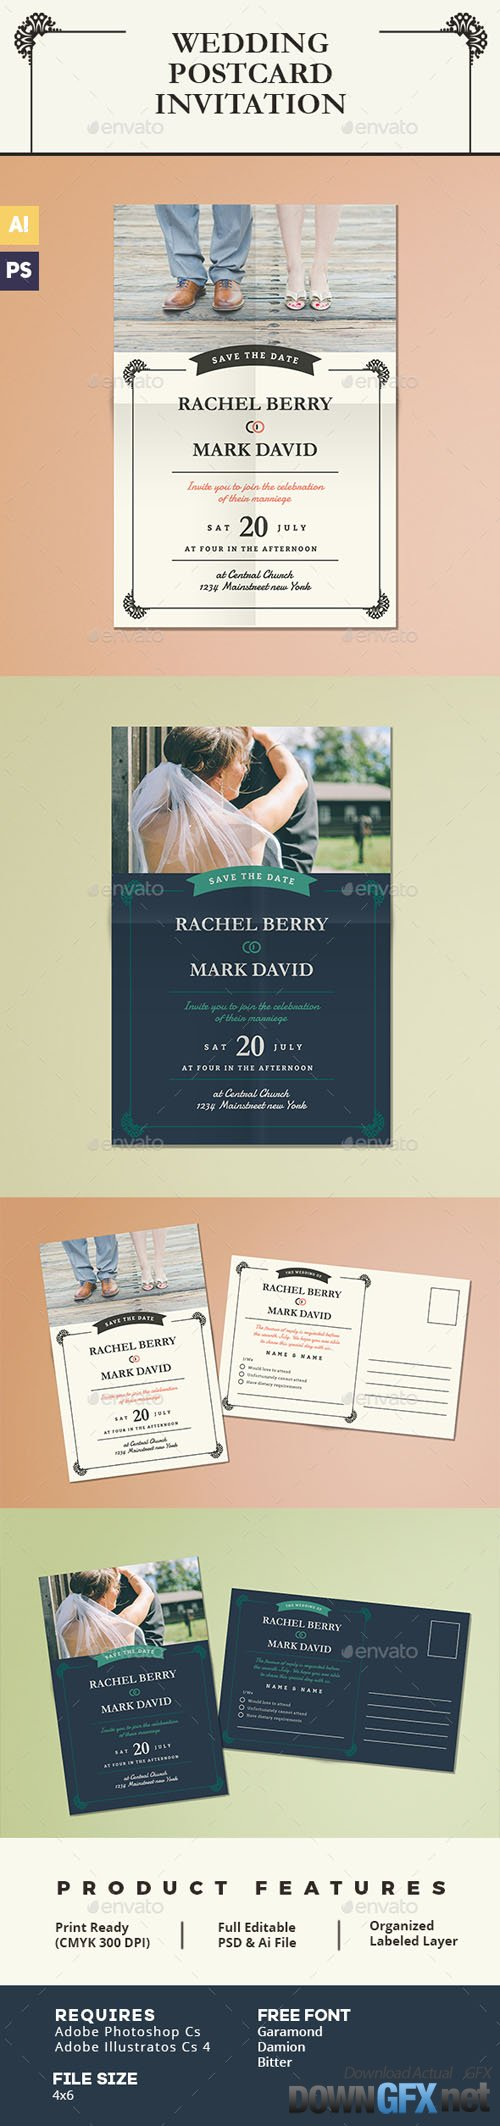 Elegant Wedding Postcard Invitation 15902160